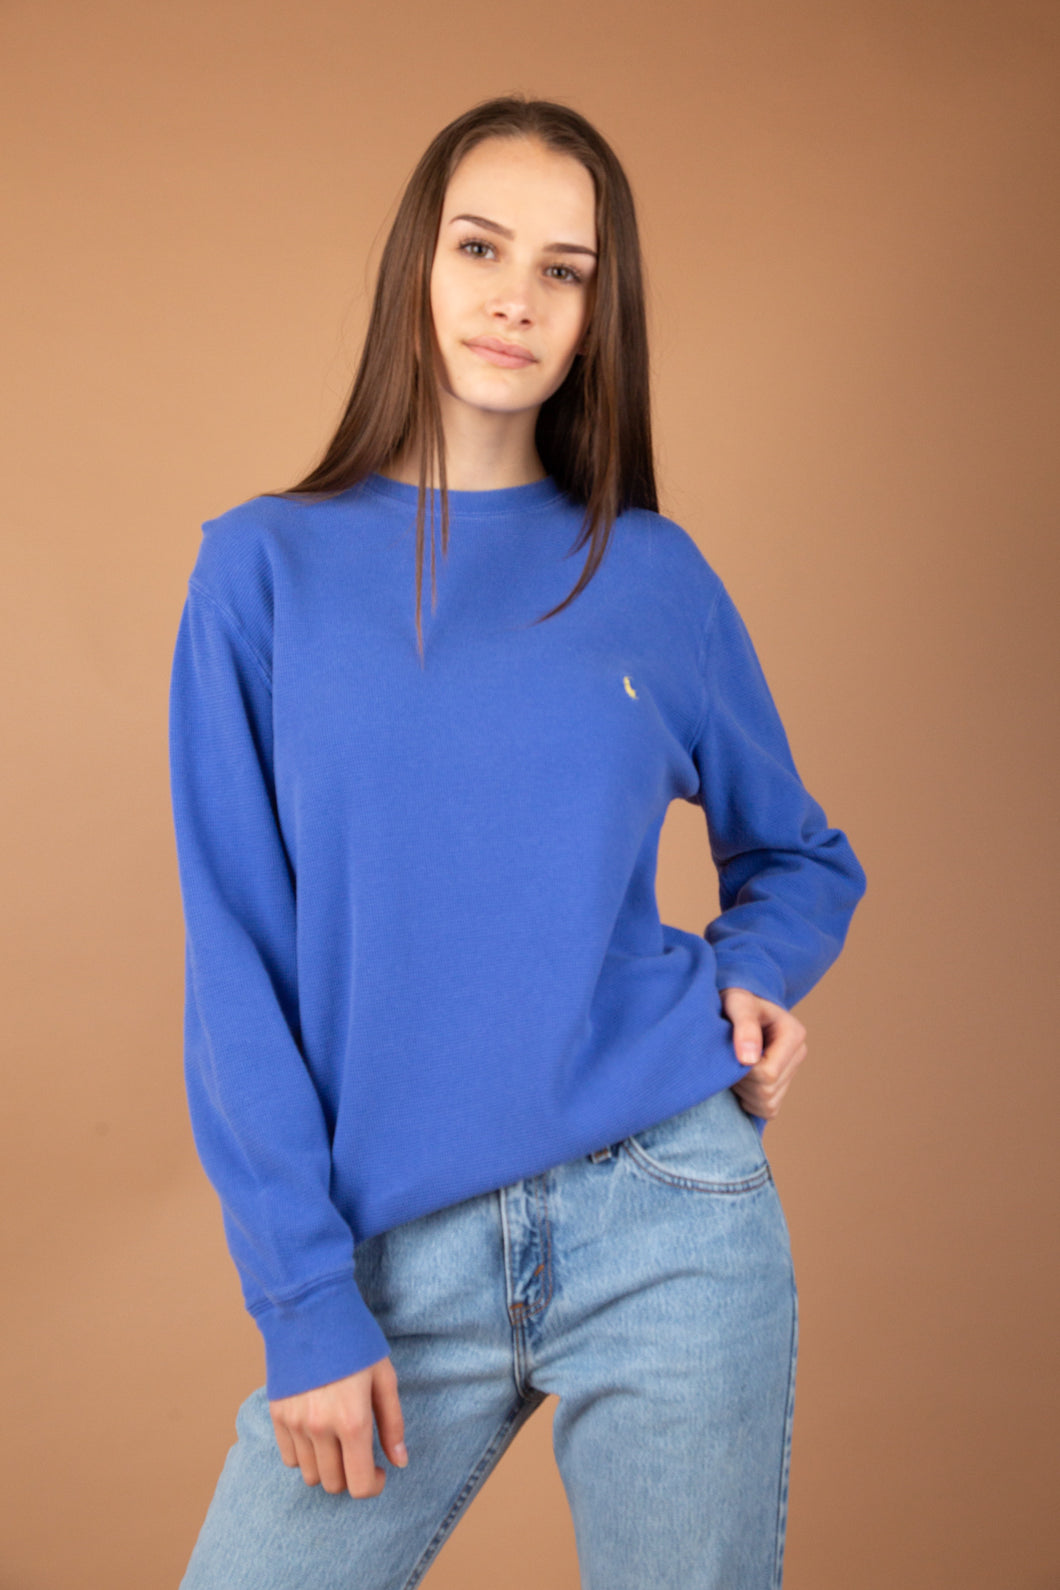 This ribbed sweater is cornflower-blue with the yellow Polo Ralph Lauren logo on the left breast. The collar is slightly stretched out, adding to the baggy fit.